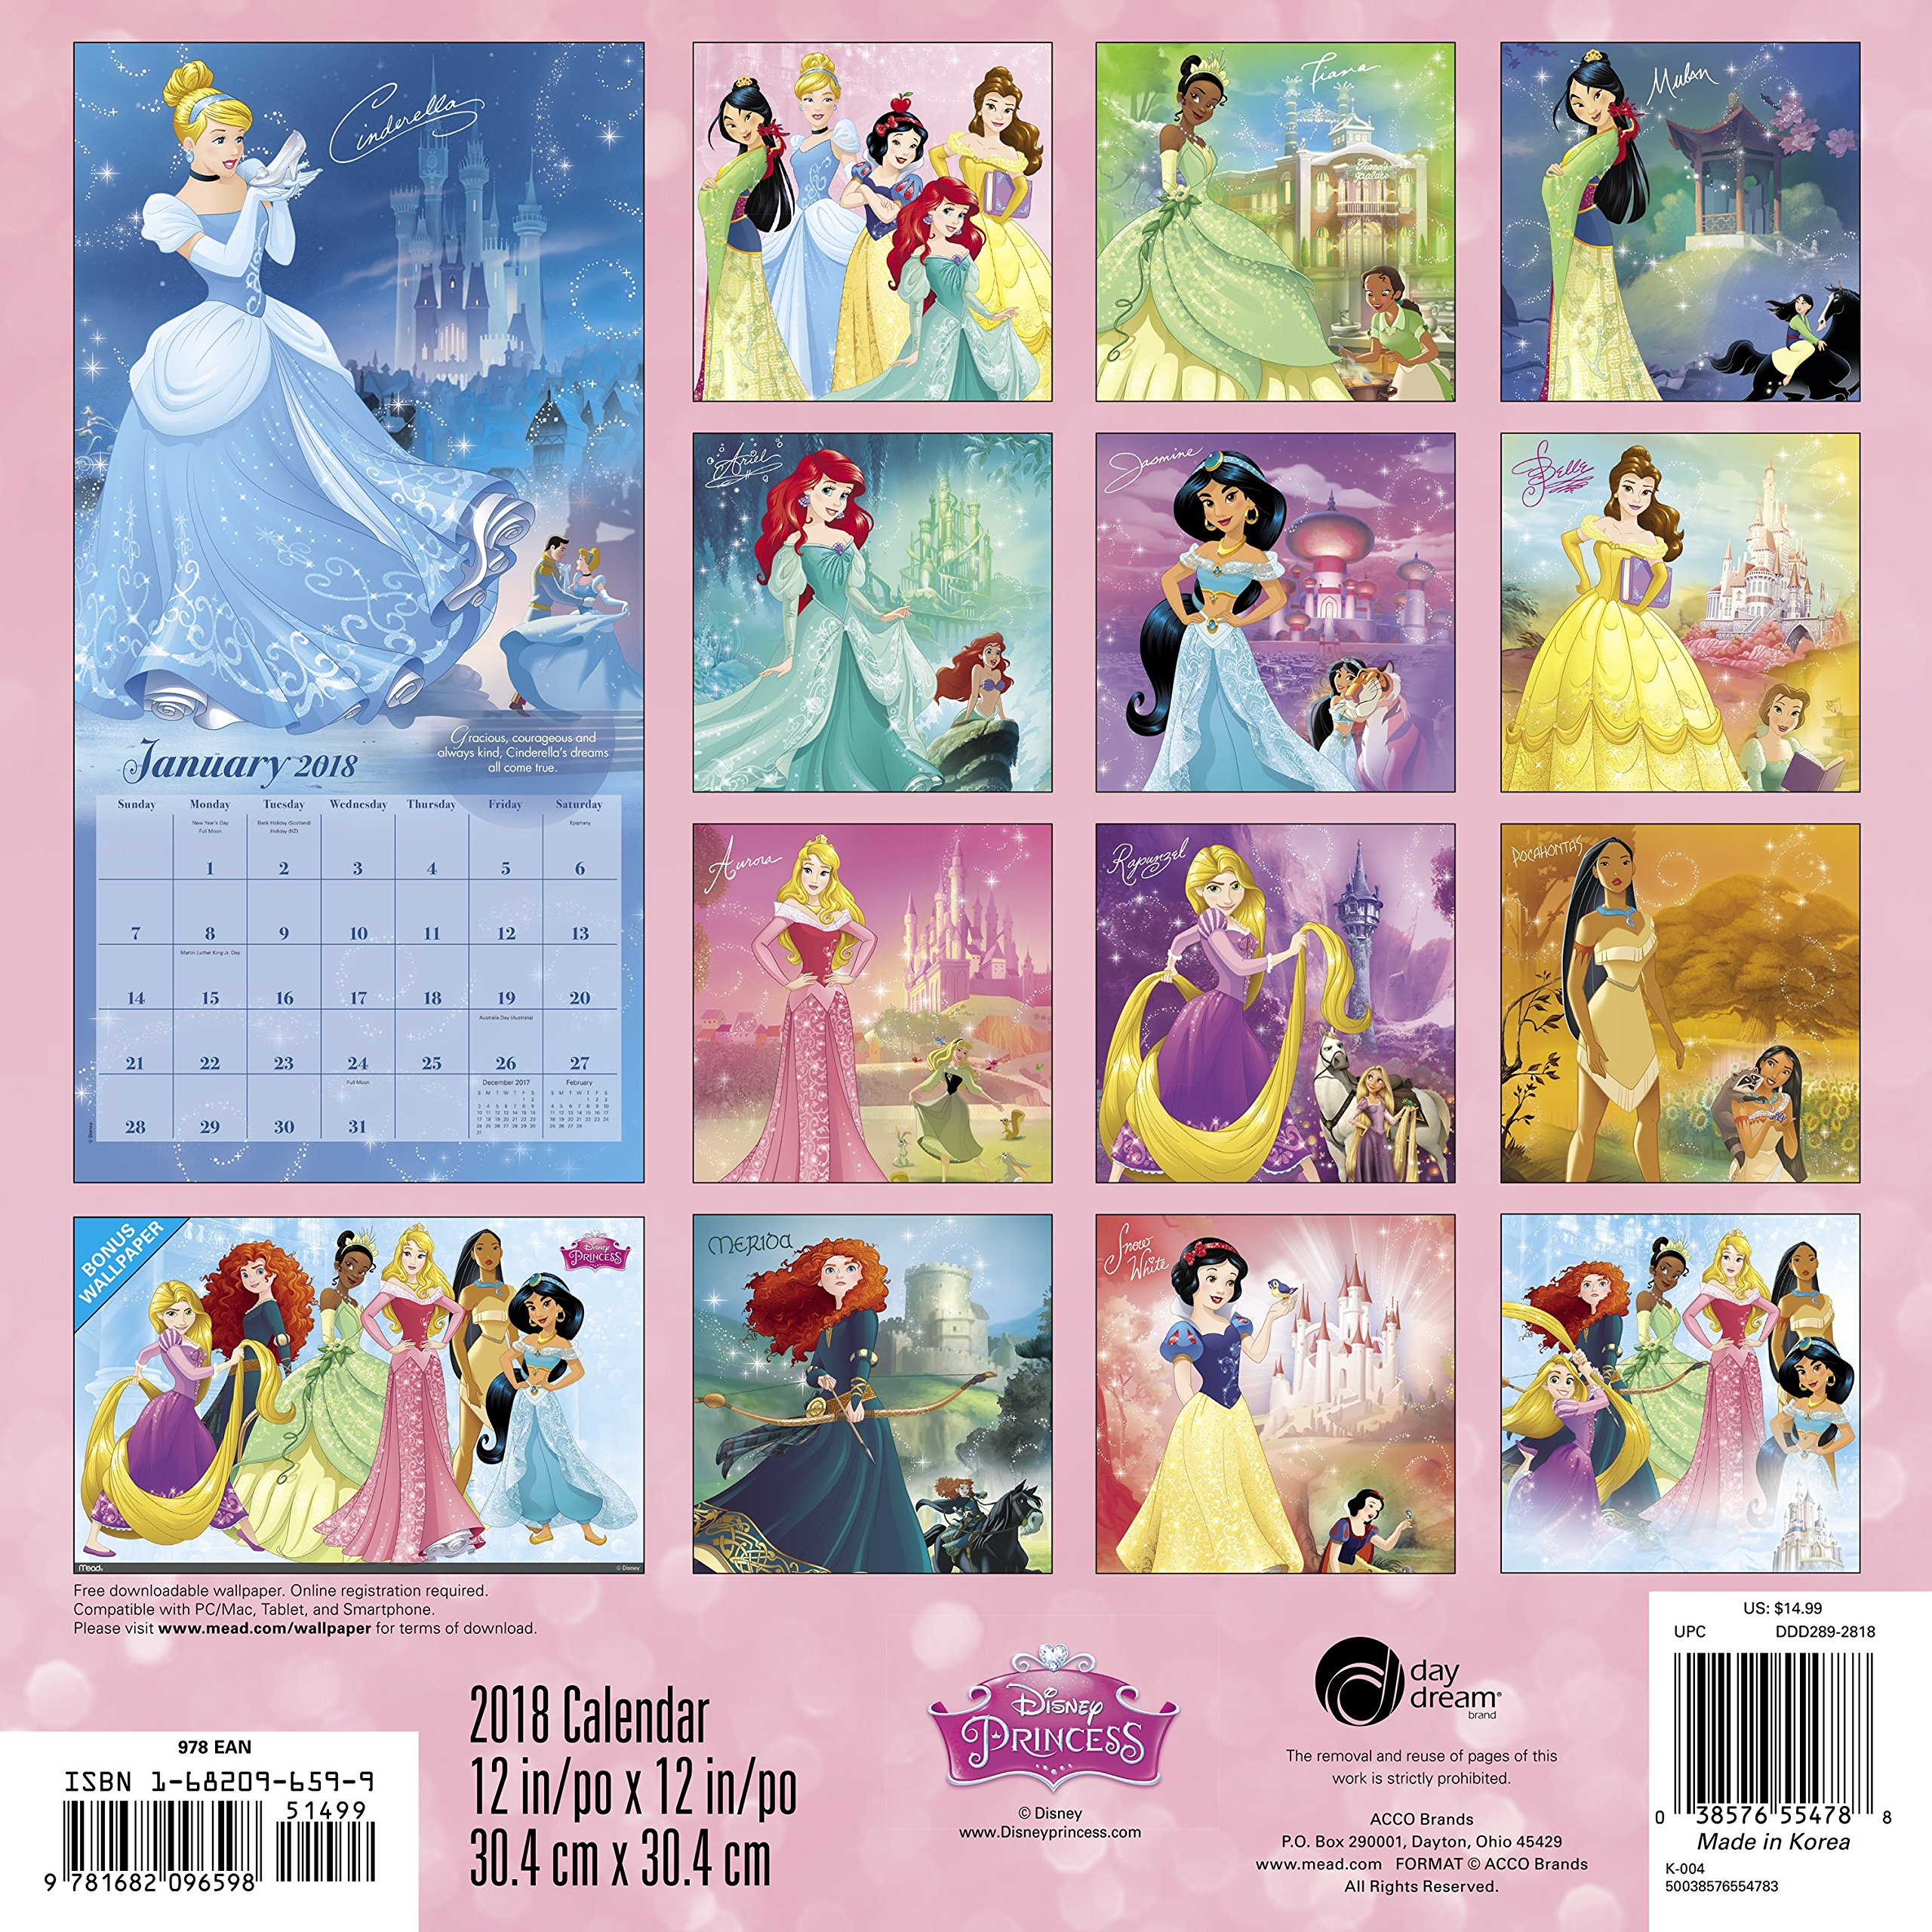 2018 Disney Princess Wall Calendar (Day Dream): Day Dream